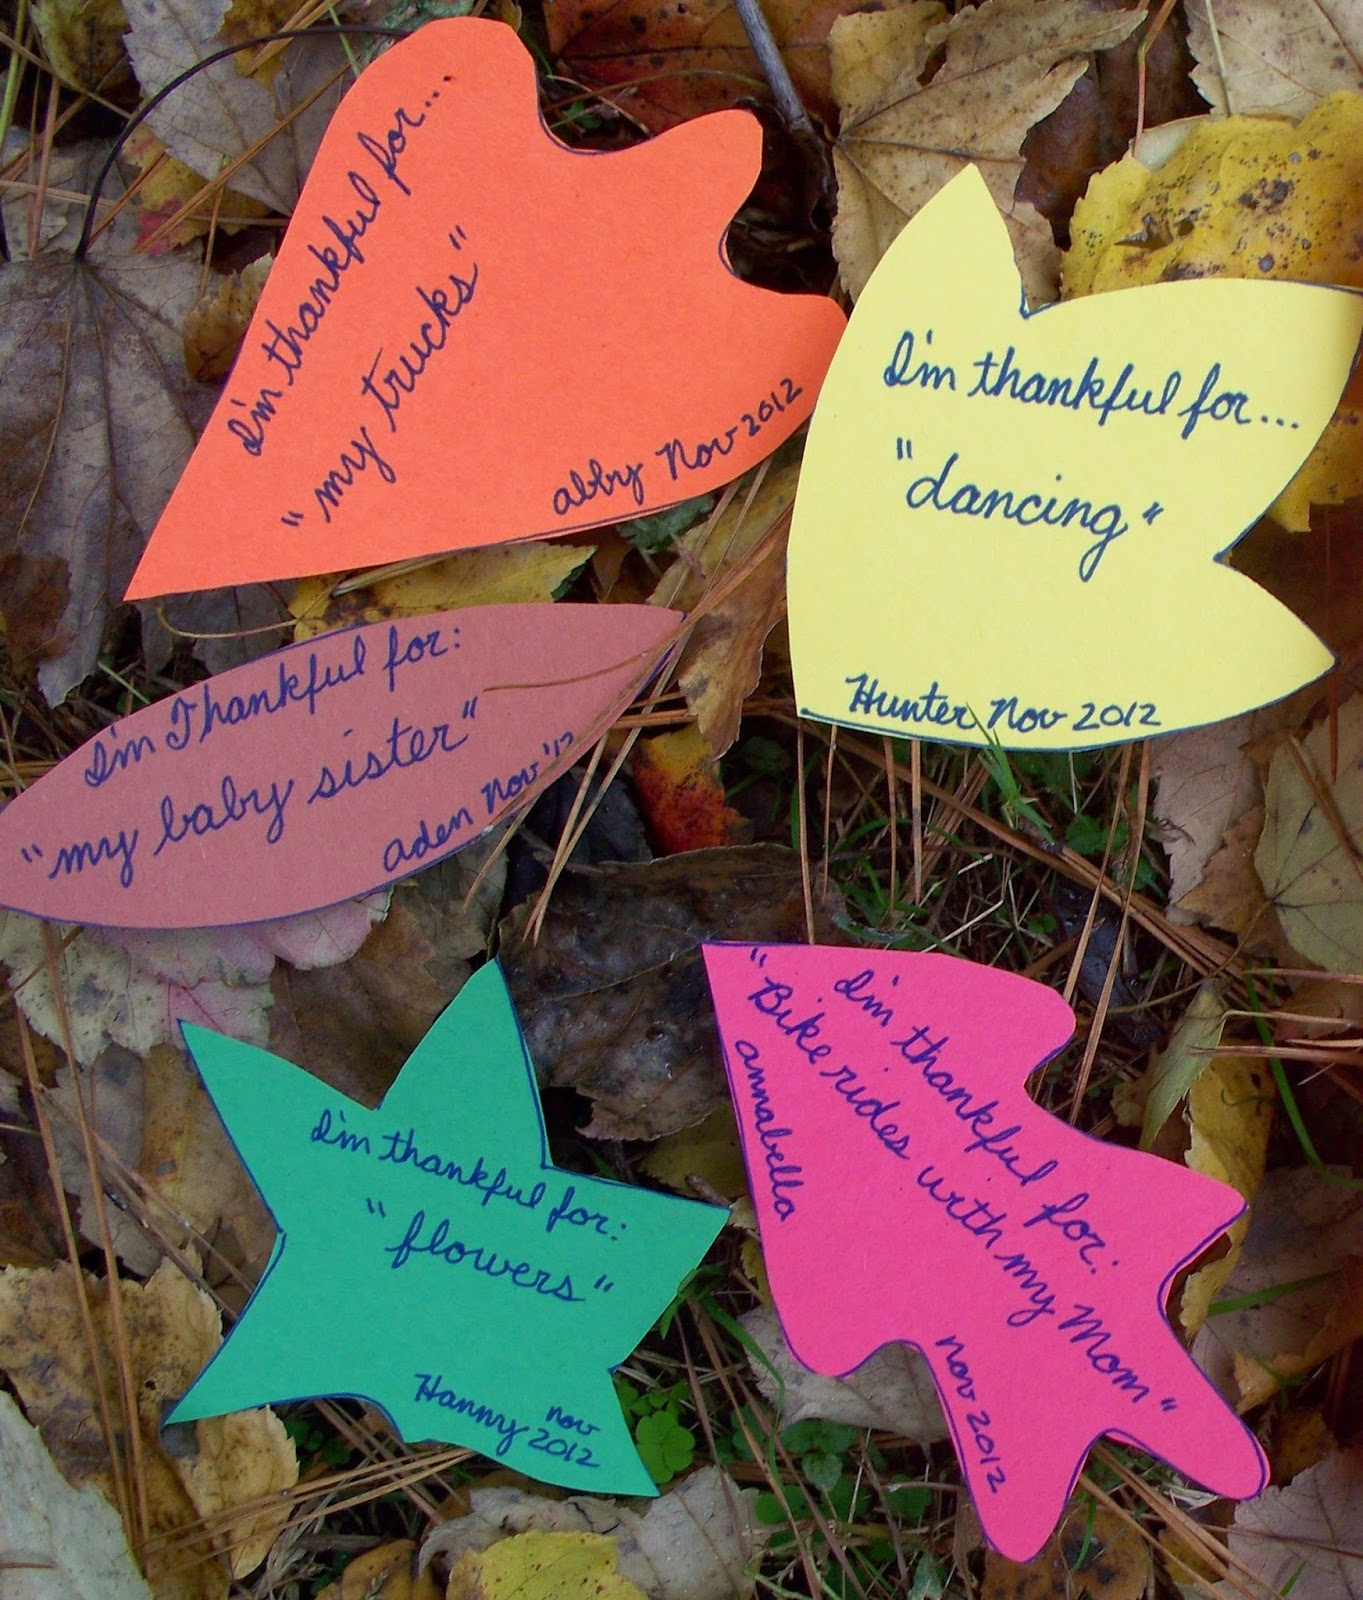 Each leaf lists something that the child is thankful for.